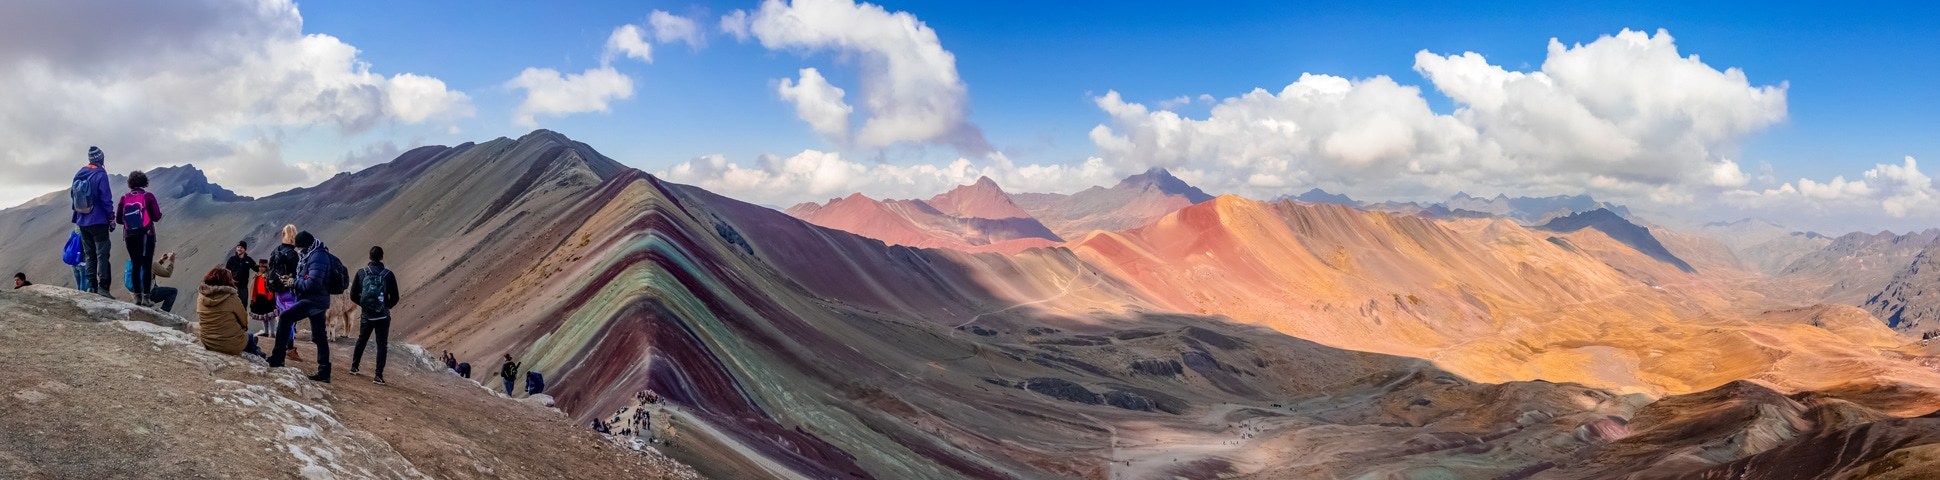 An Extensive Travel Guide to Peru